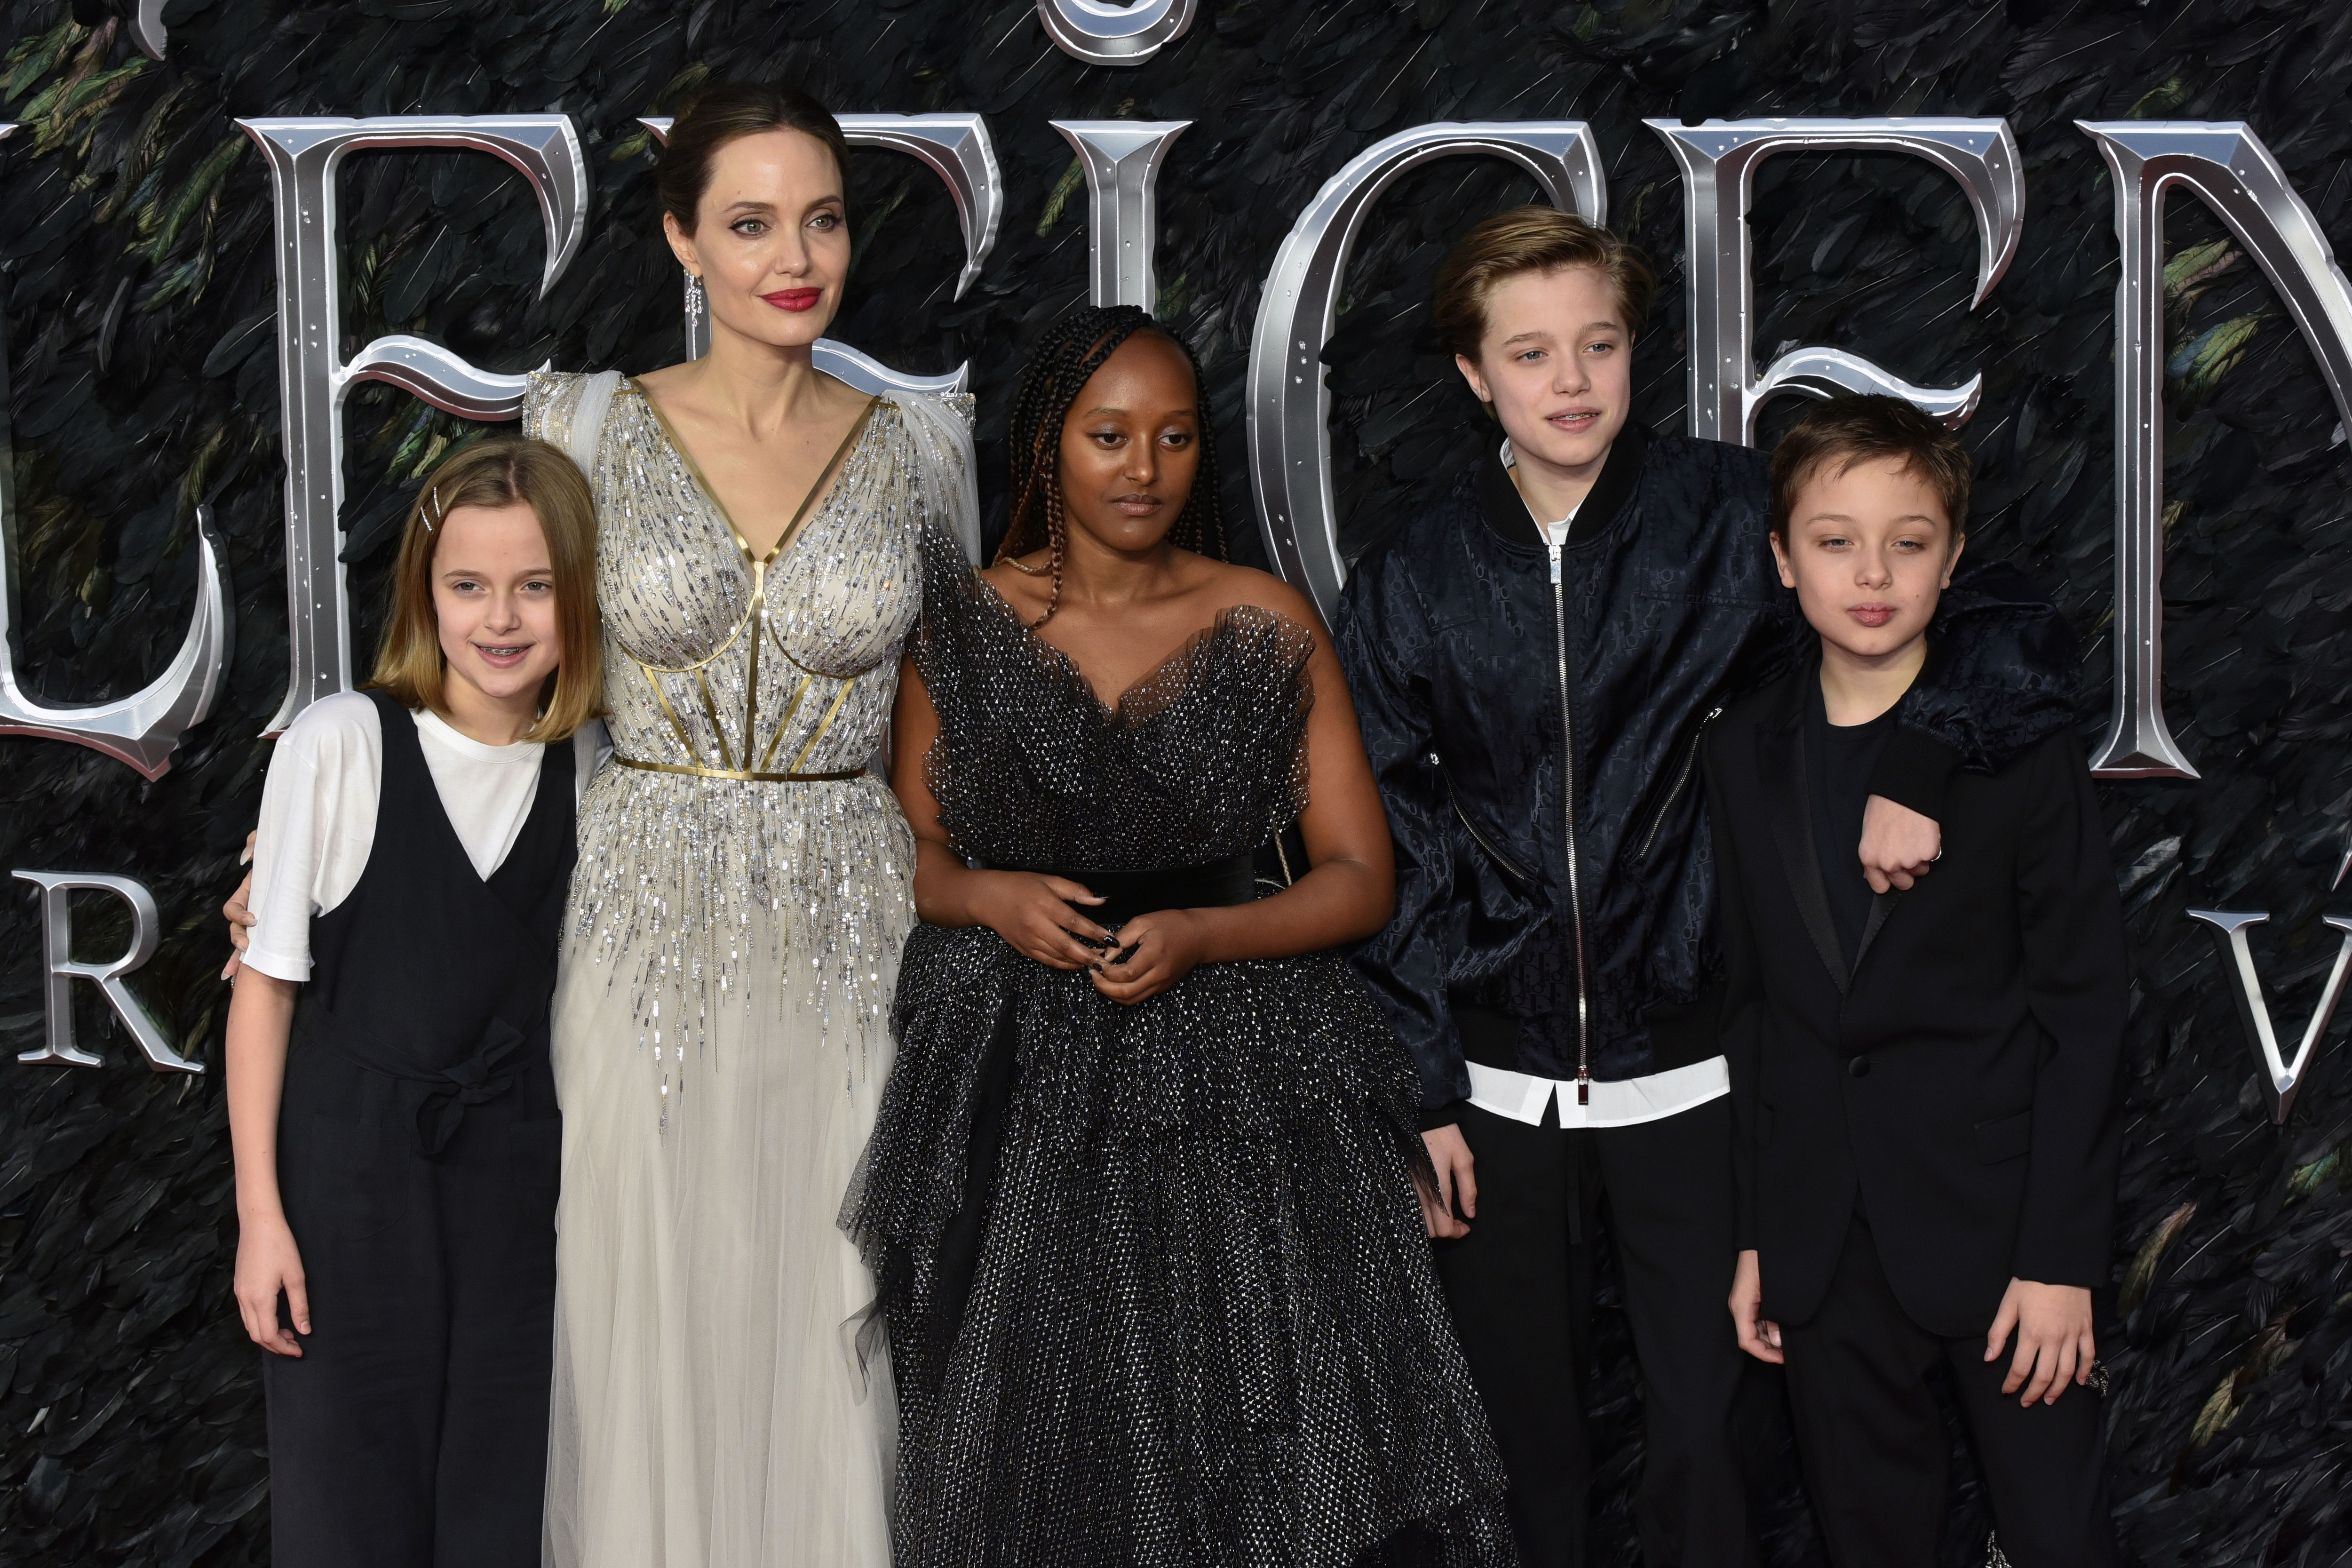 Angelina Jolie Has Been In Hospital With Two Daughters Undergoing